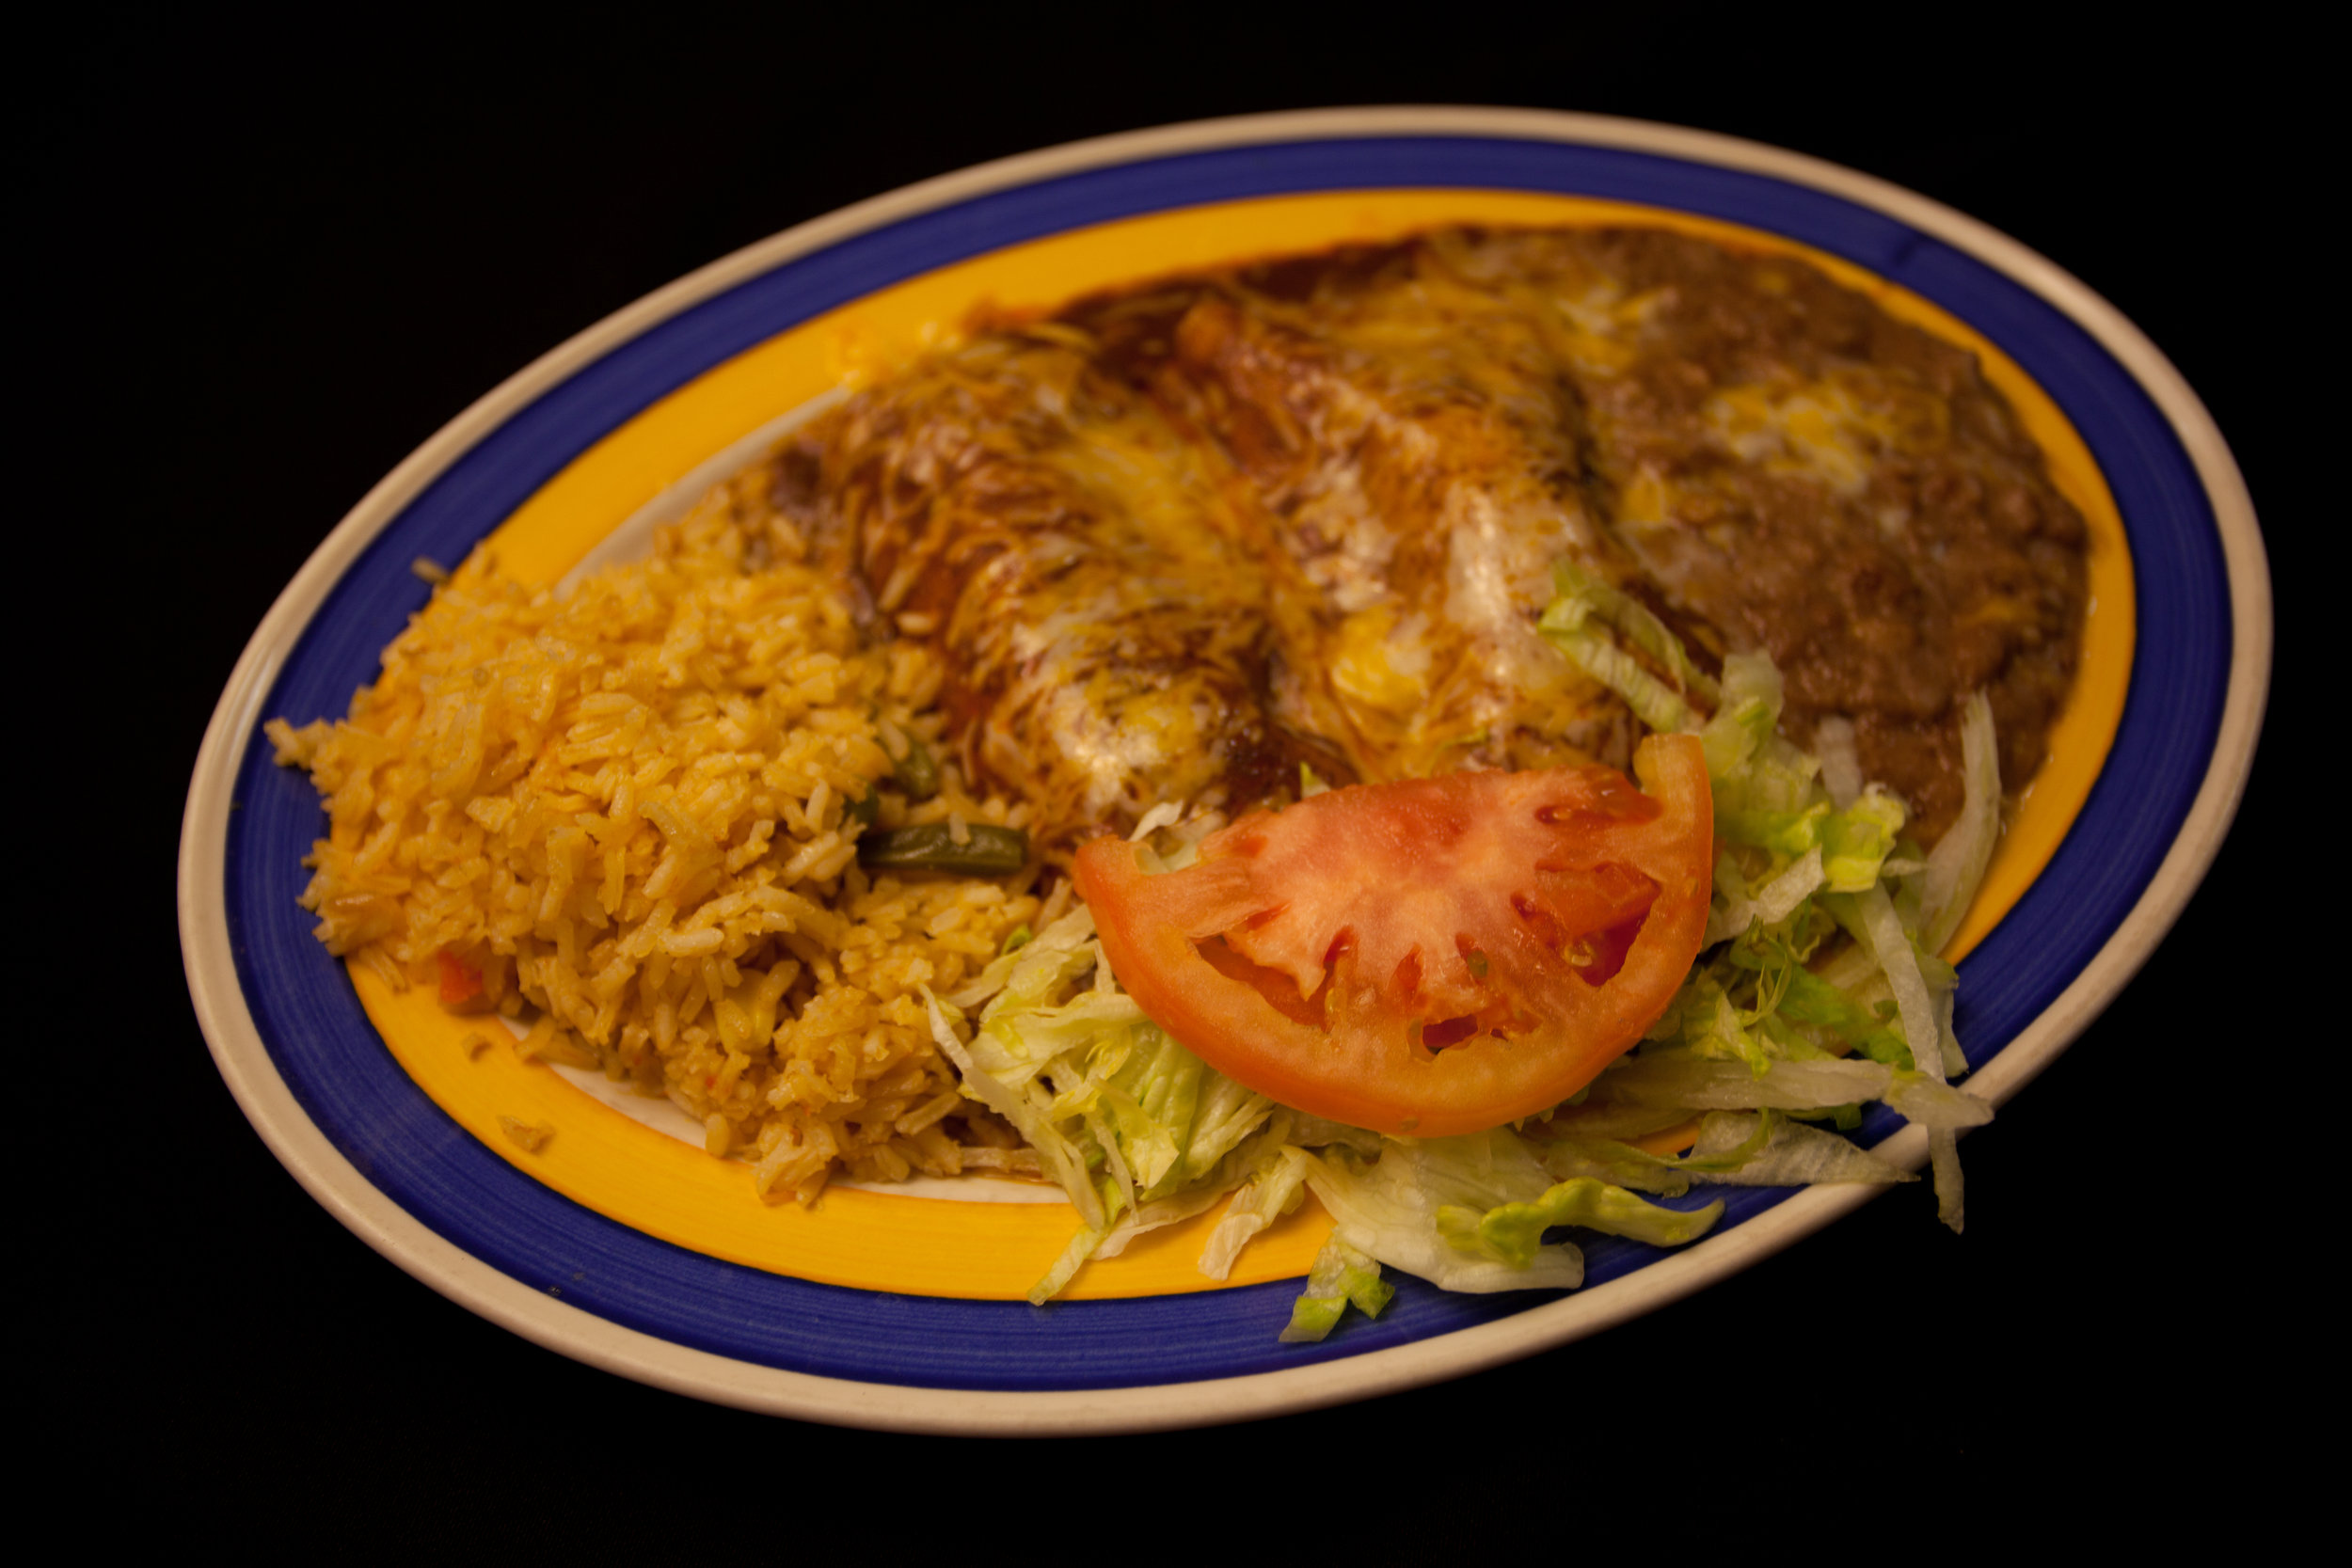 Enchilada Roja - The Roja / Red salsa Enchilada Lunch or Dinner is on special.